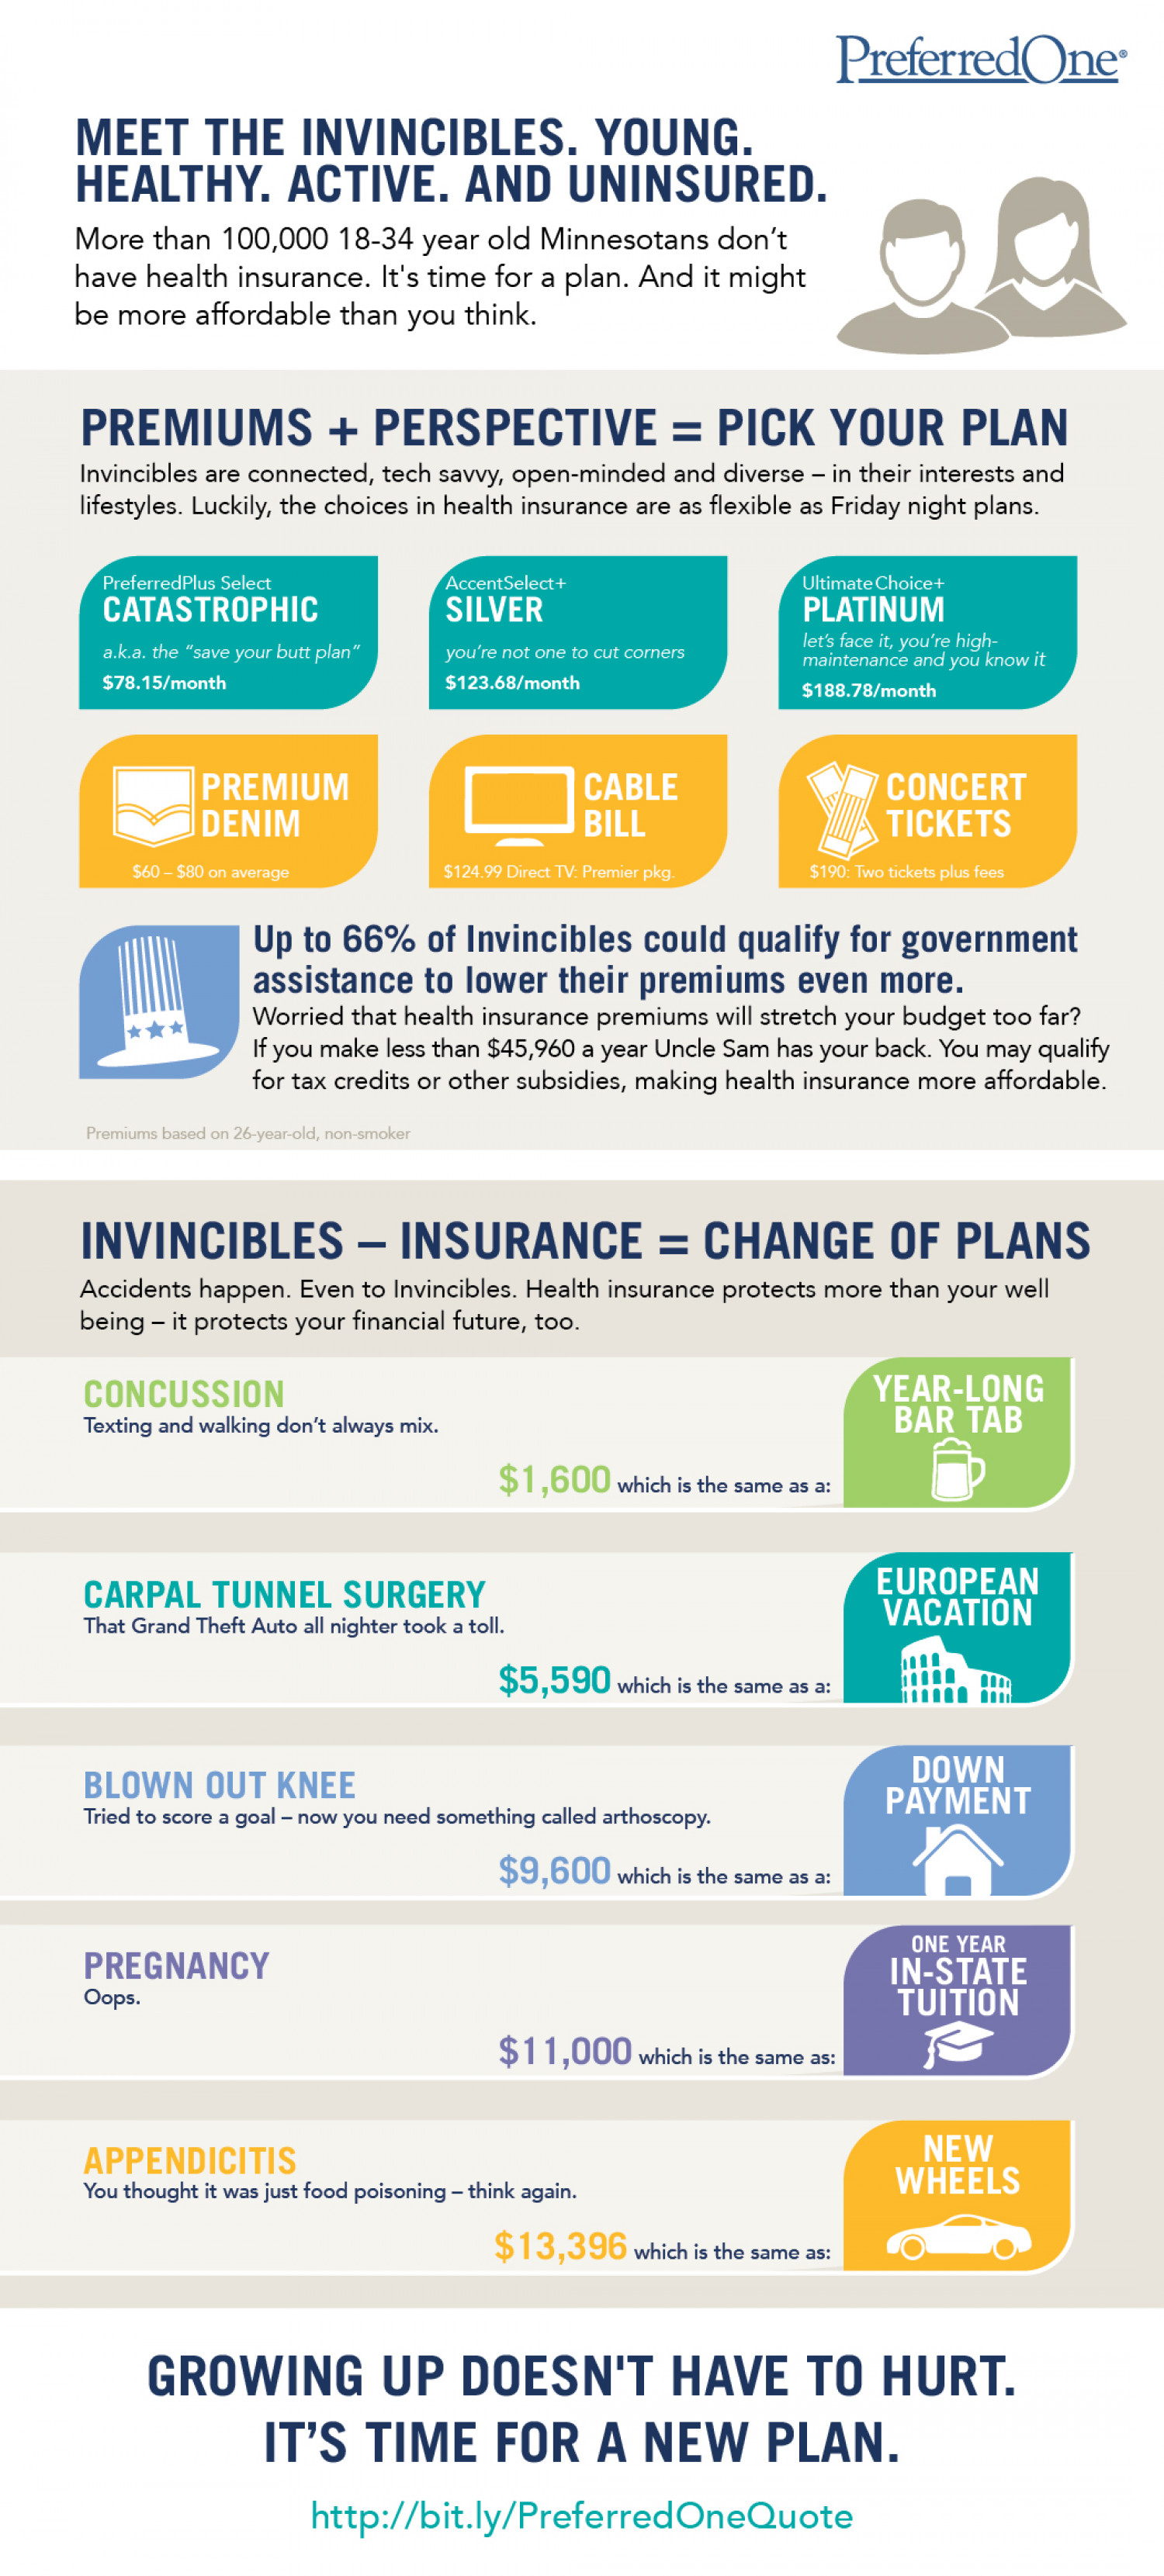 Meet The Invincibles. Infographic